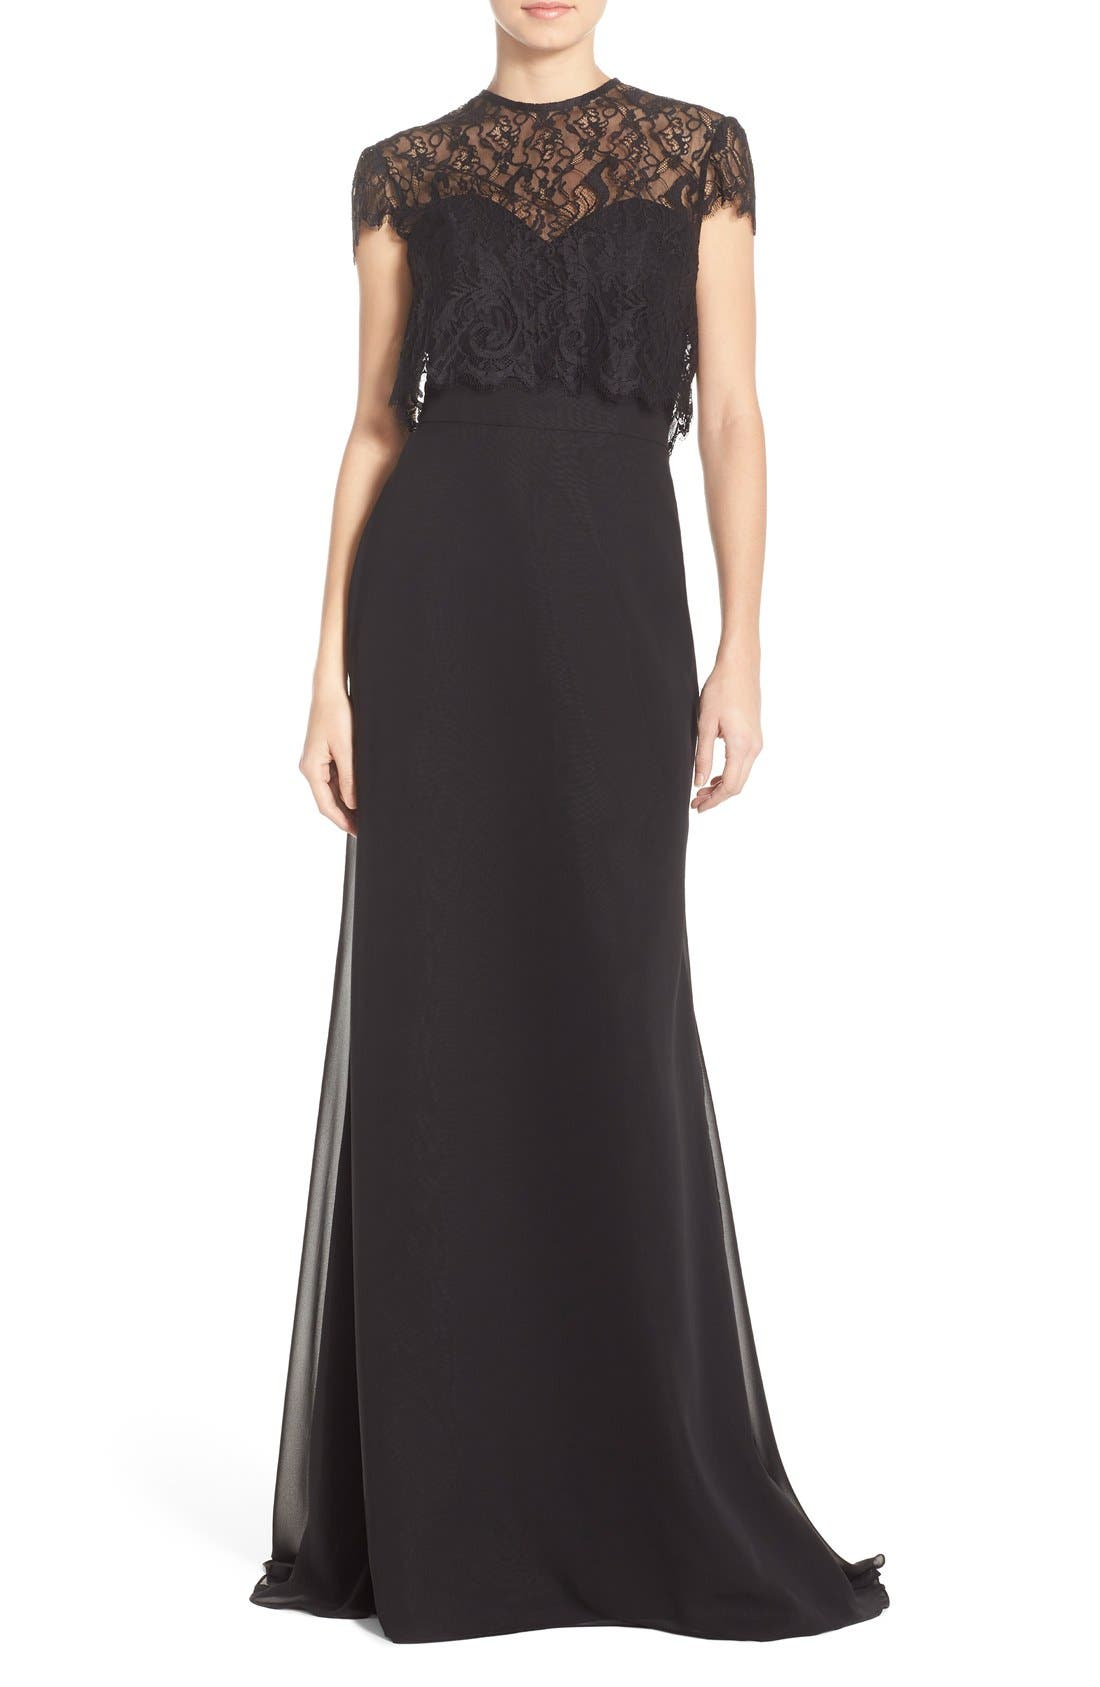 Strapless Chiffon A-Line Gown with Removable Lace Overlay,                         Main,                         color, 001